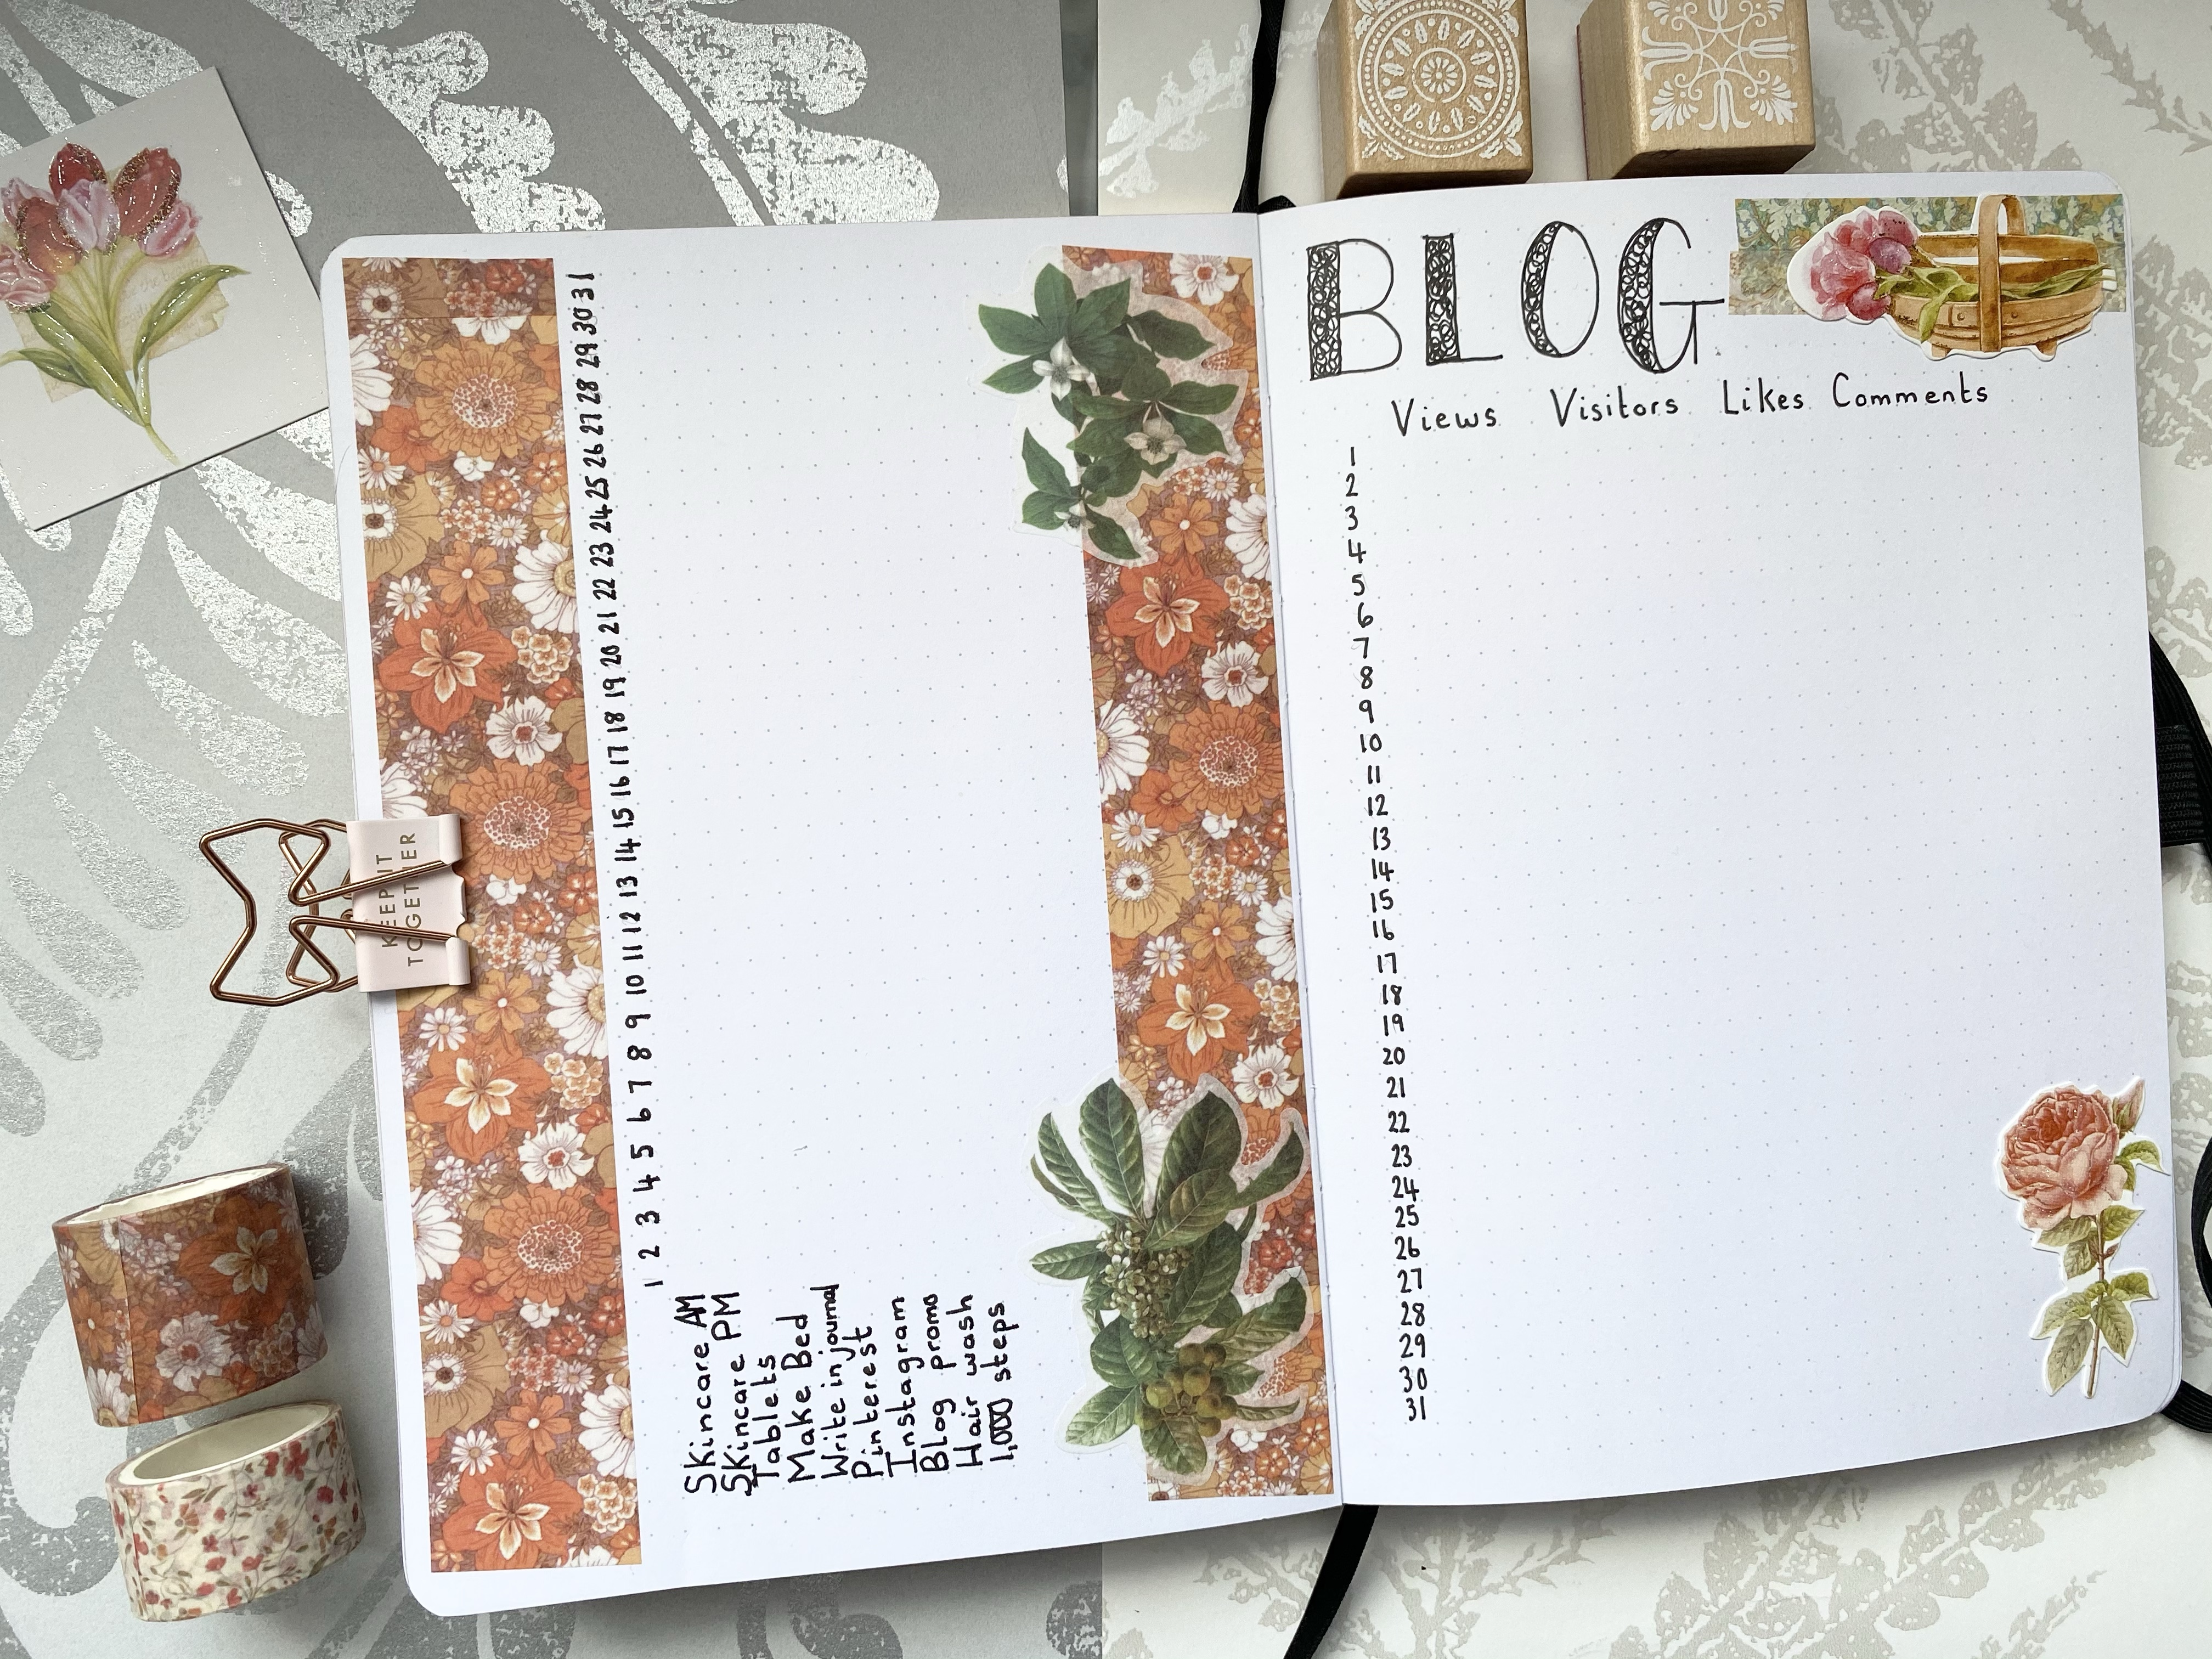 A bullet journal double page spread. On the left page is a habit tracker with thick orange floral washi tape and green flower stickers. On the right page is a blog statistics page that has green floral washi and flower stickers and one with a brown basket of flowers. There is washi tape next to the left side of the bullet journal and wooden stamps on the top right page of the bullet journal.